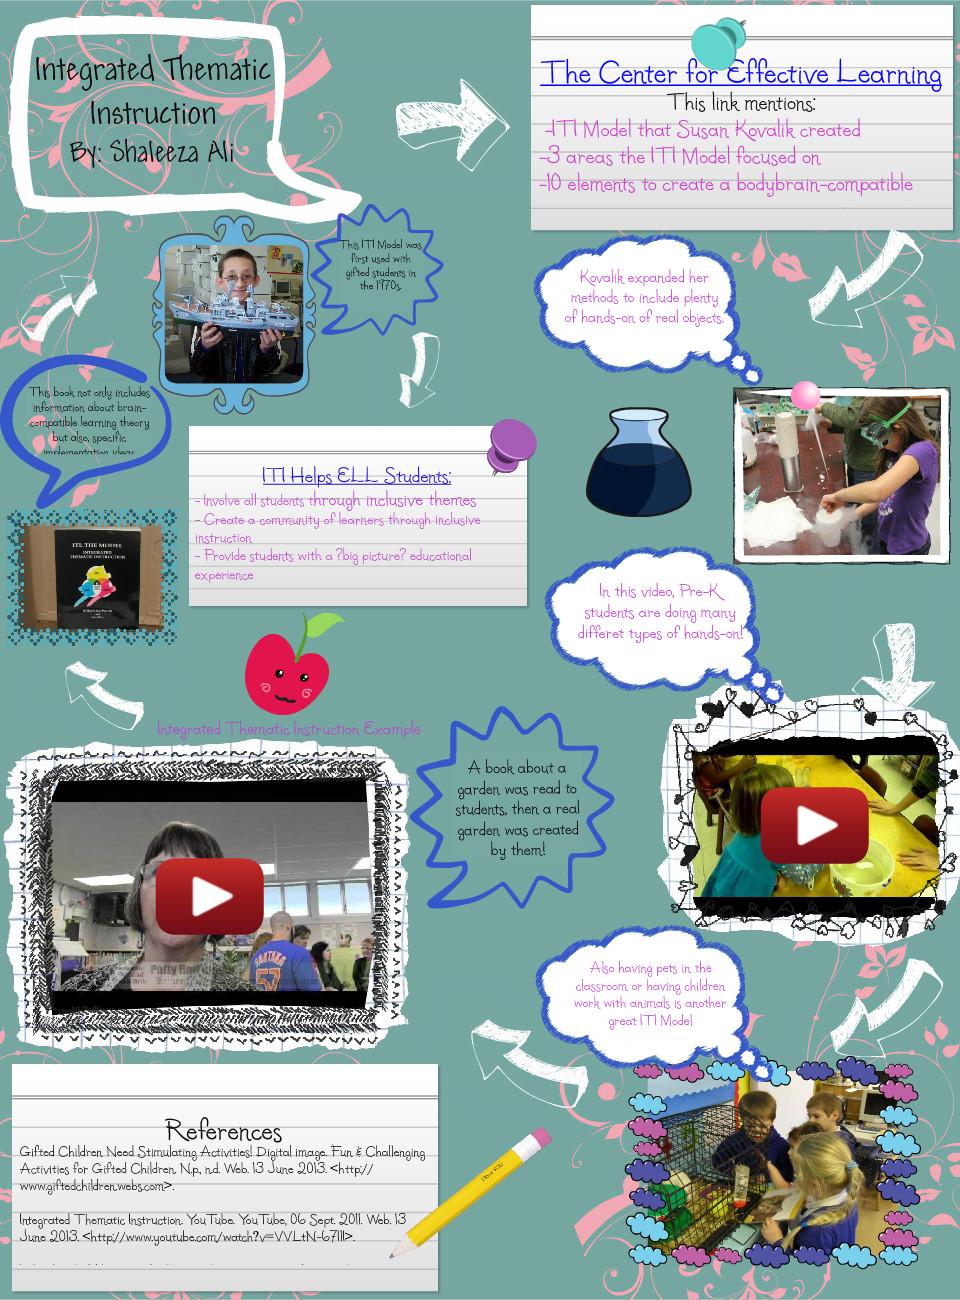 Integrated Thematic Instruction Text Images Music Video